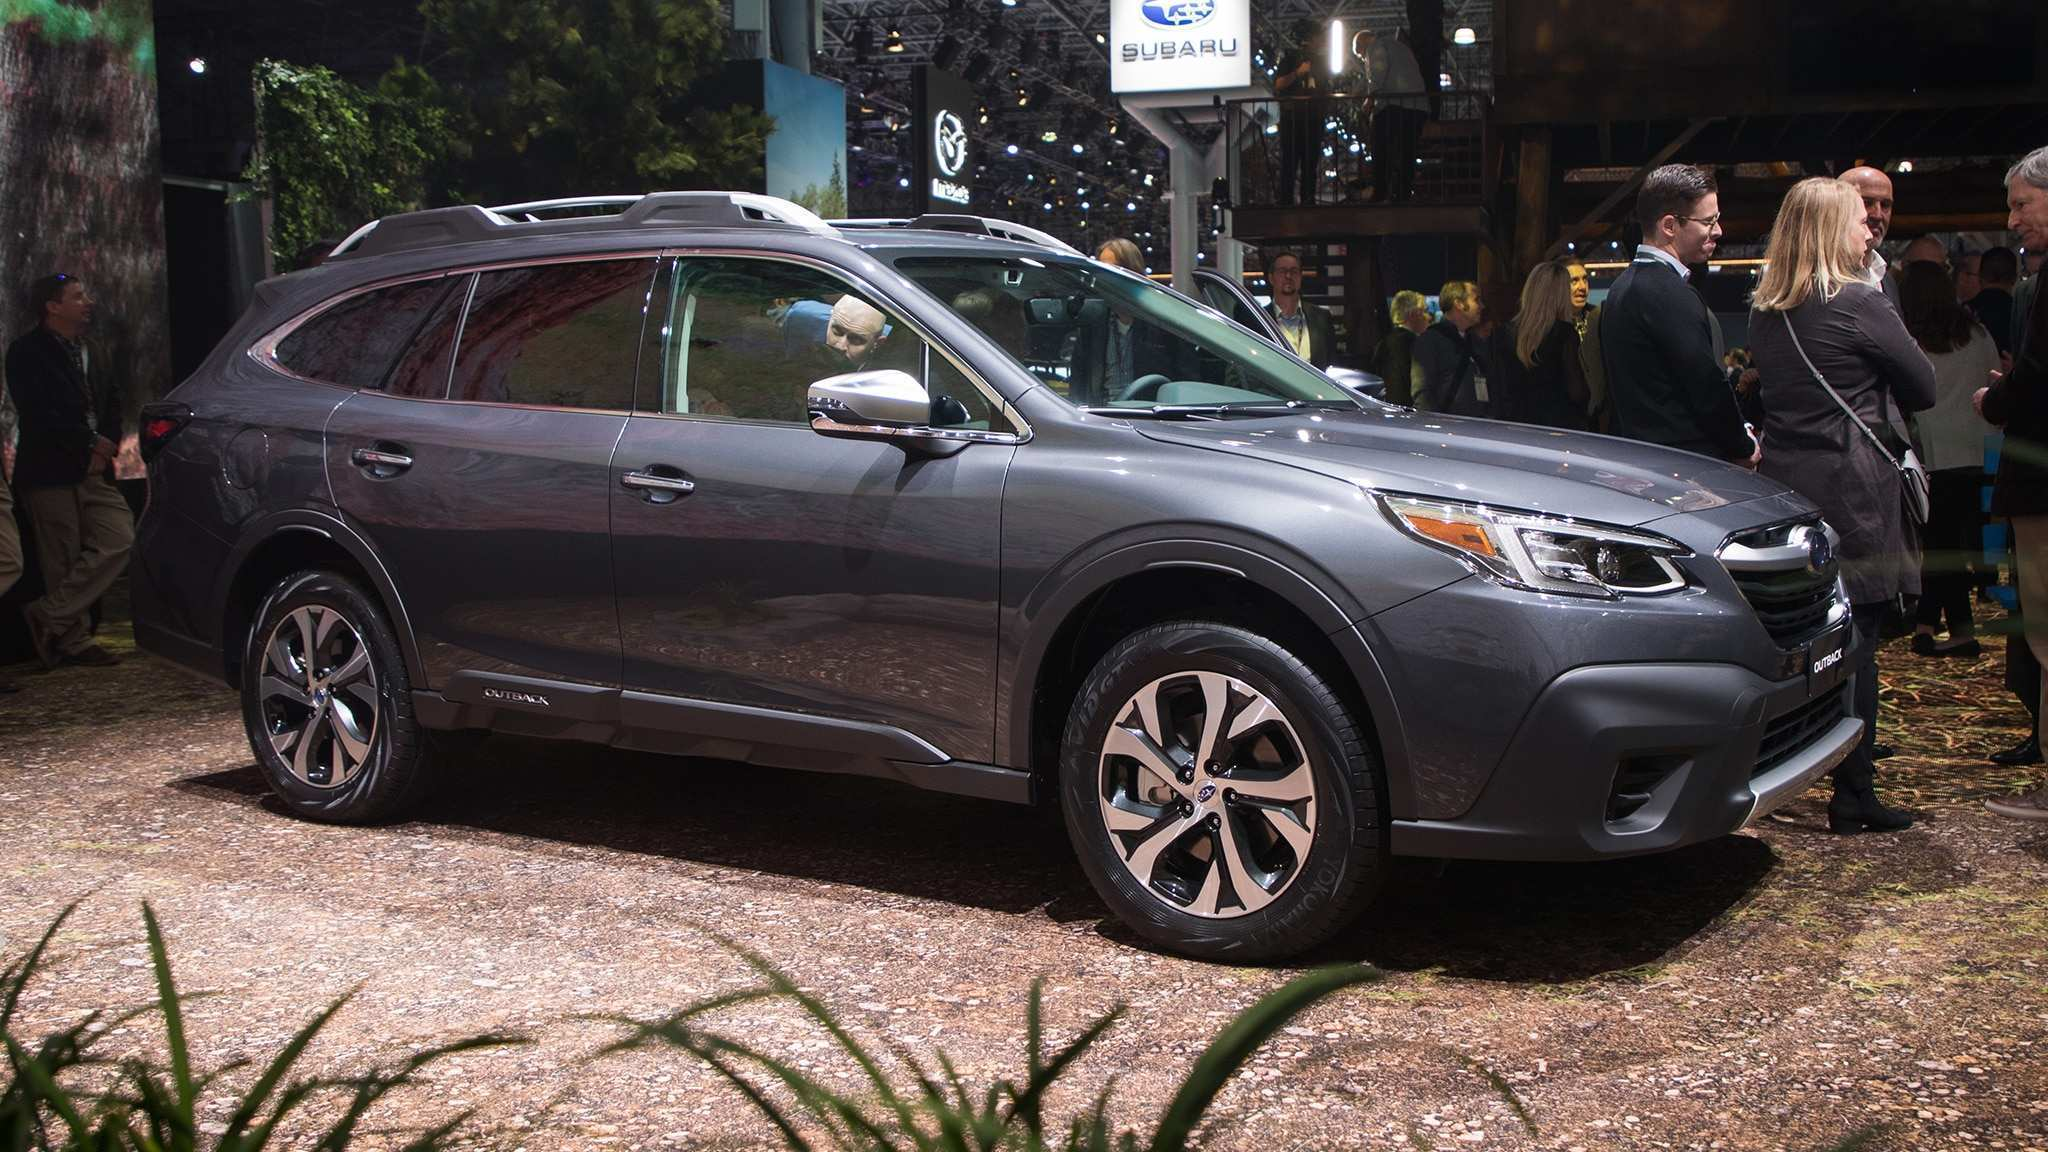 98 New All New Subaru Outback 2020 Spy Shoot